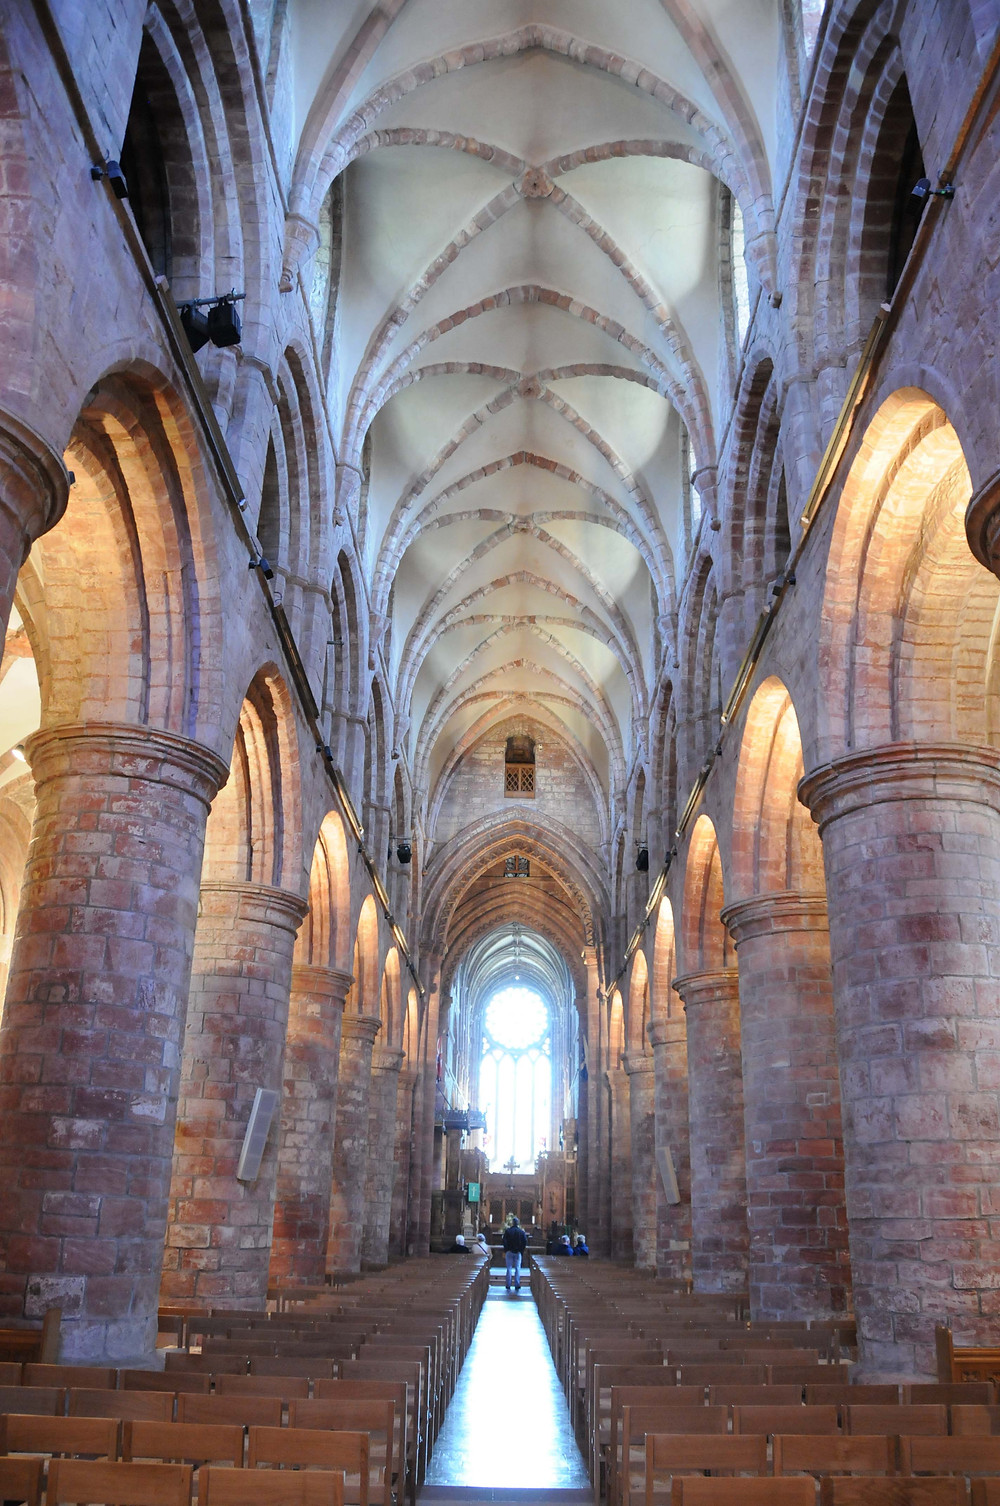 Interior of the 12th century St Magnus' Cathedral